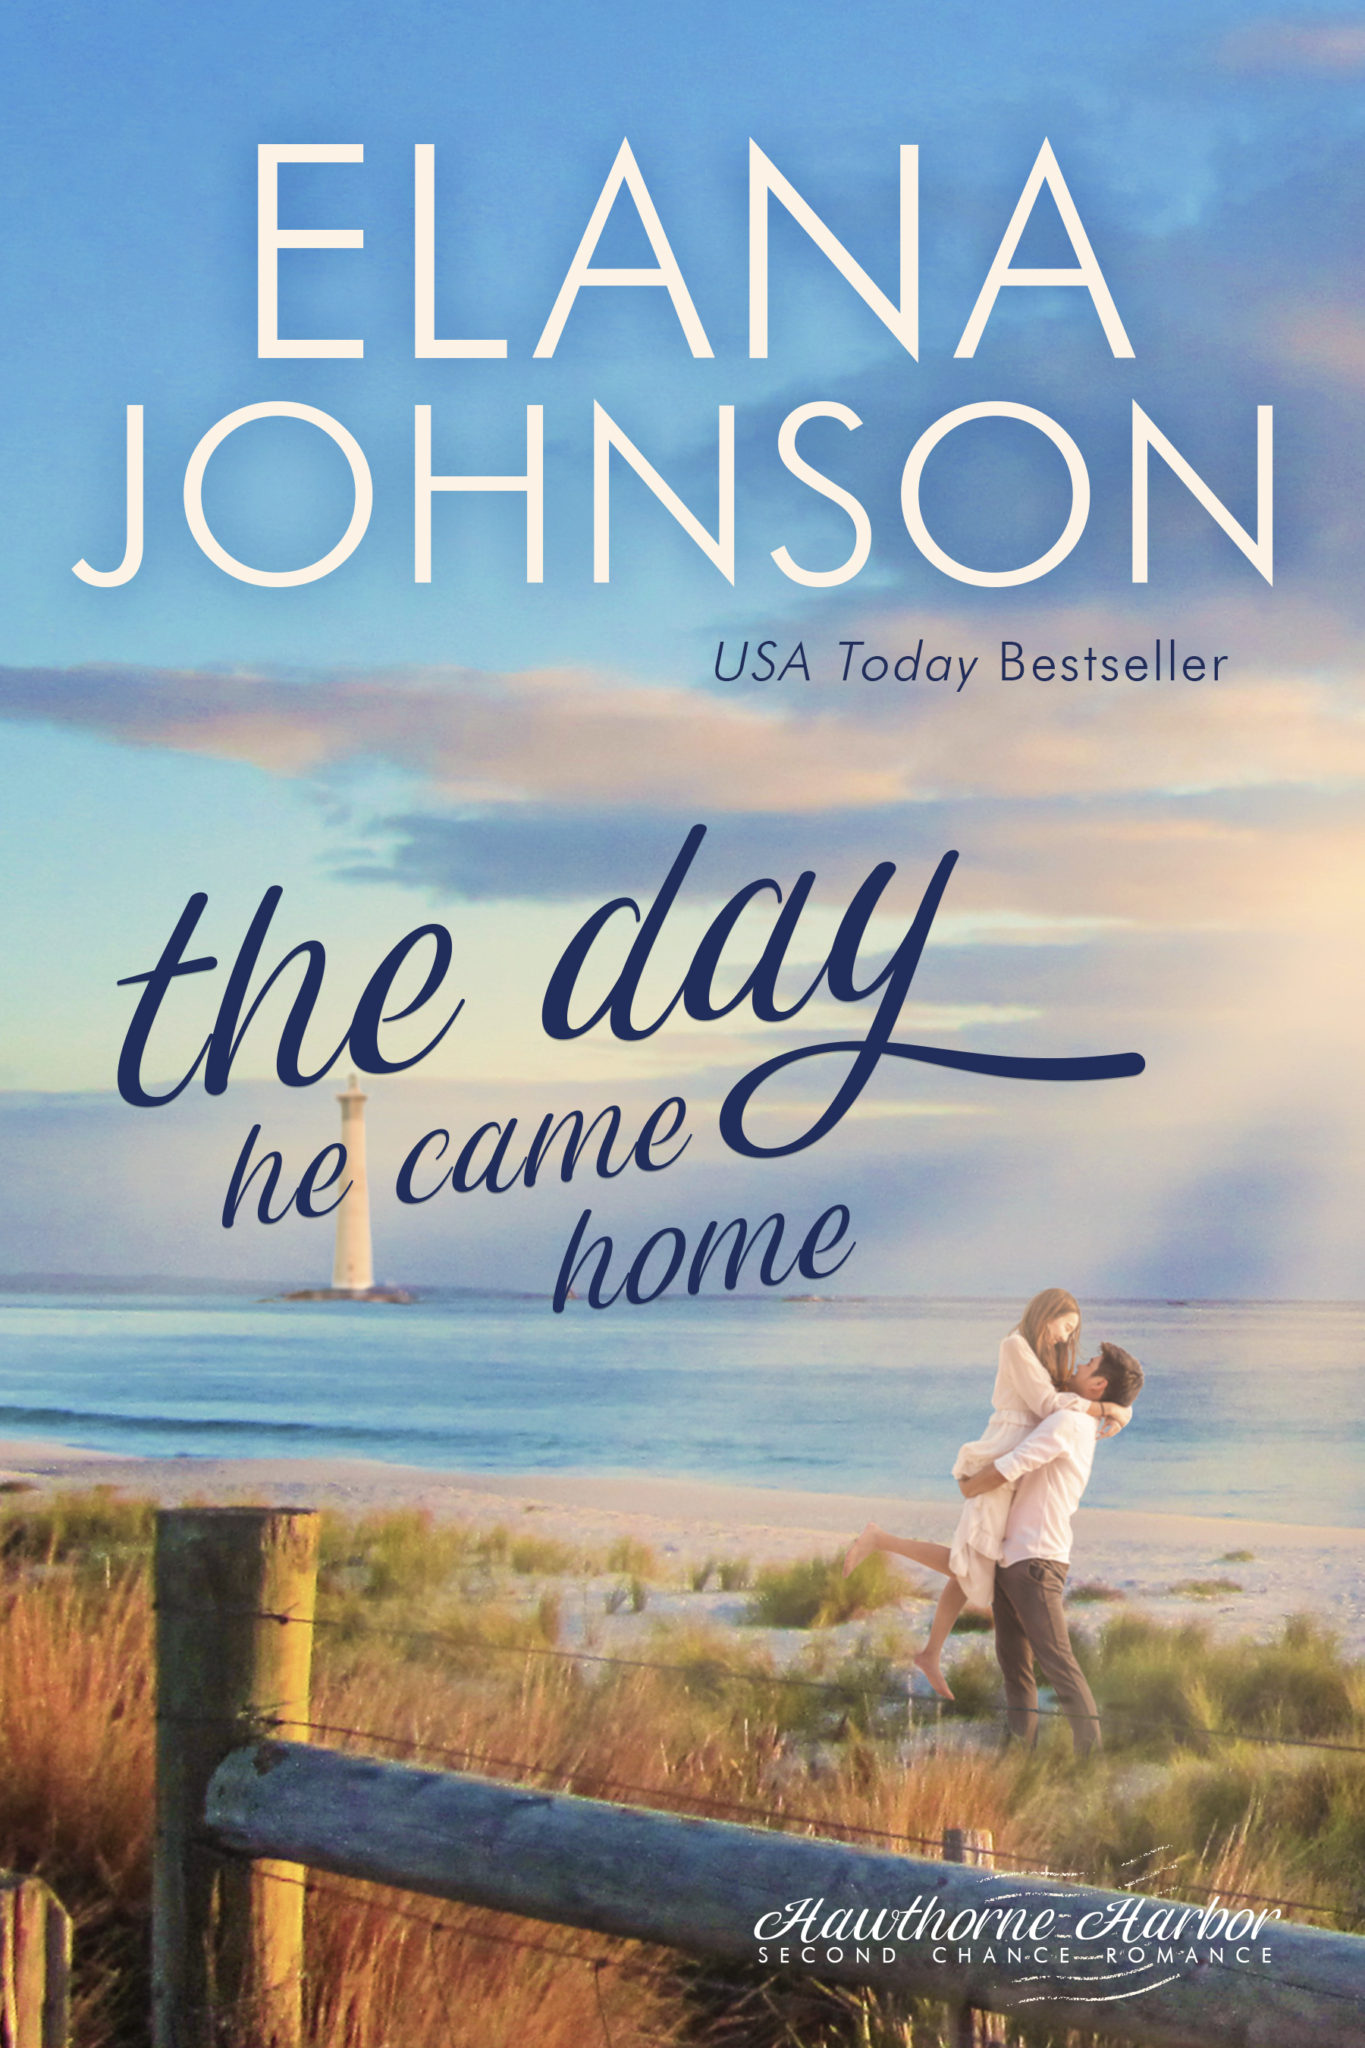 CLBD2020_ElanaJohnson_HawthorneHarborSecondChanceRomance_05_TheDayHeCameHome_EBOOK_FINAL